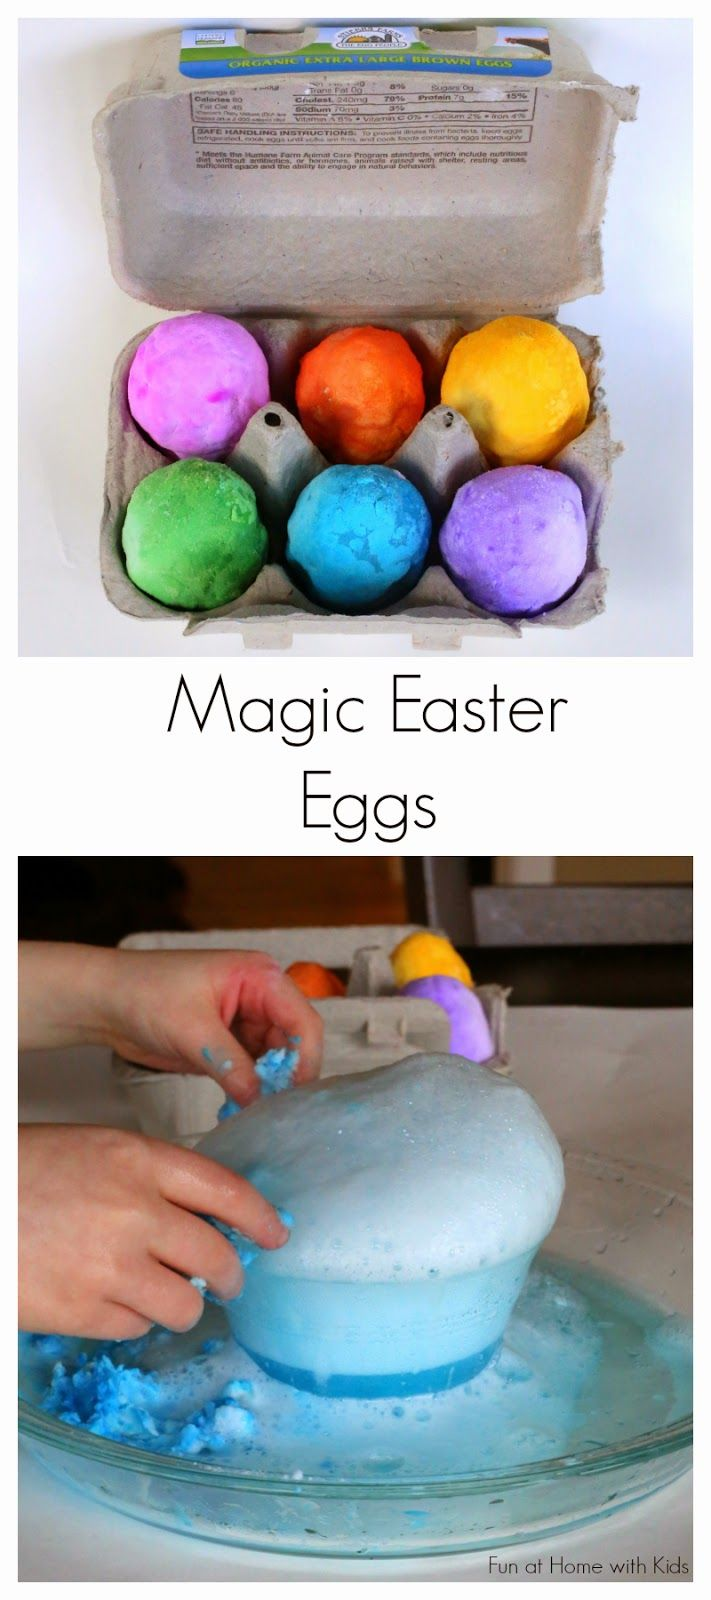 Magic Easter Eggs Two Ways: Hatching and Foaming from Fun at Home with Kids